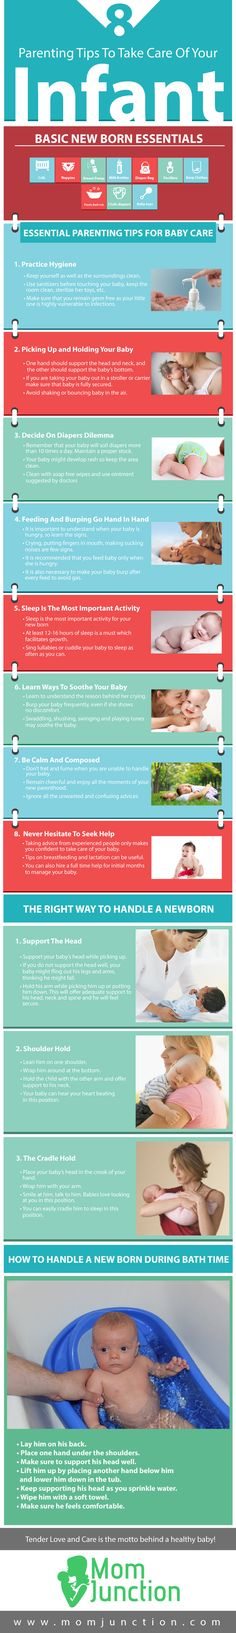 Top 10 Parenting Tips To Take Care Of Your Infant: Want to know how to take care of newborn baby? Here are the top 10 tips that will help you nurture your baby with confidence.